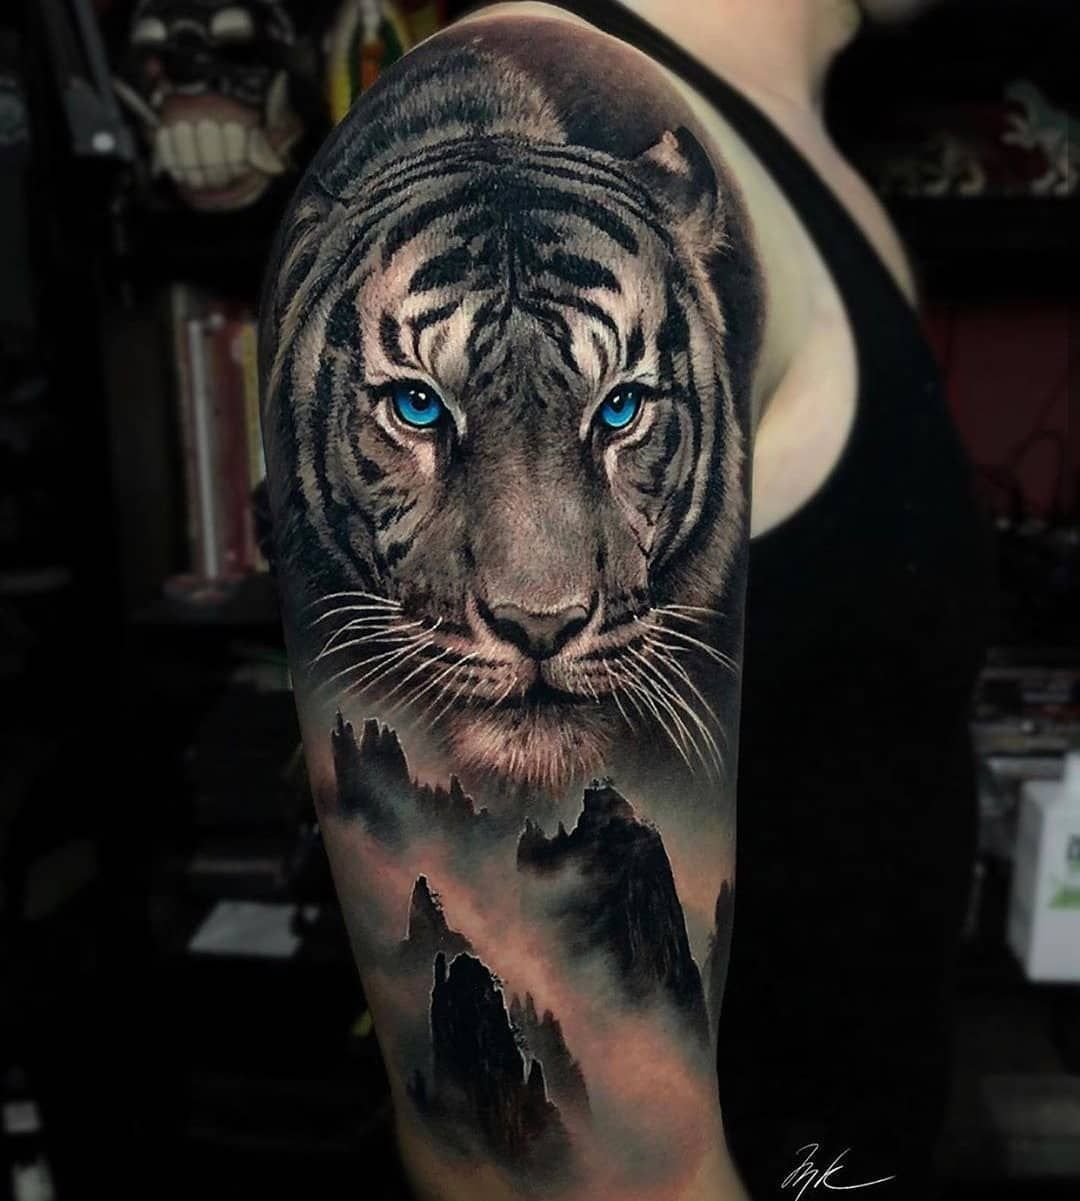 Tattoo models and designs artist IG: unknown ... by @the_art_of_tattooing - artist -  Tattoo models